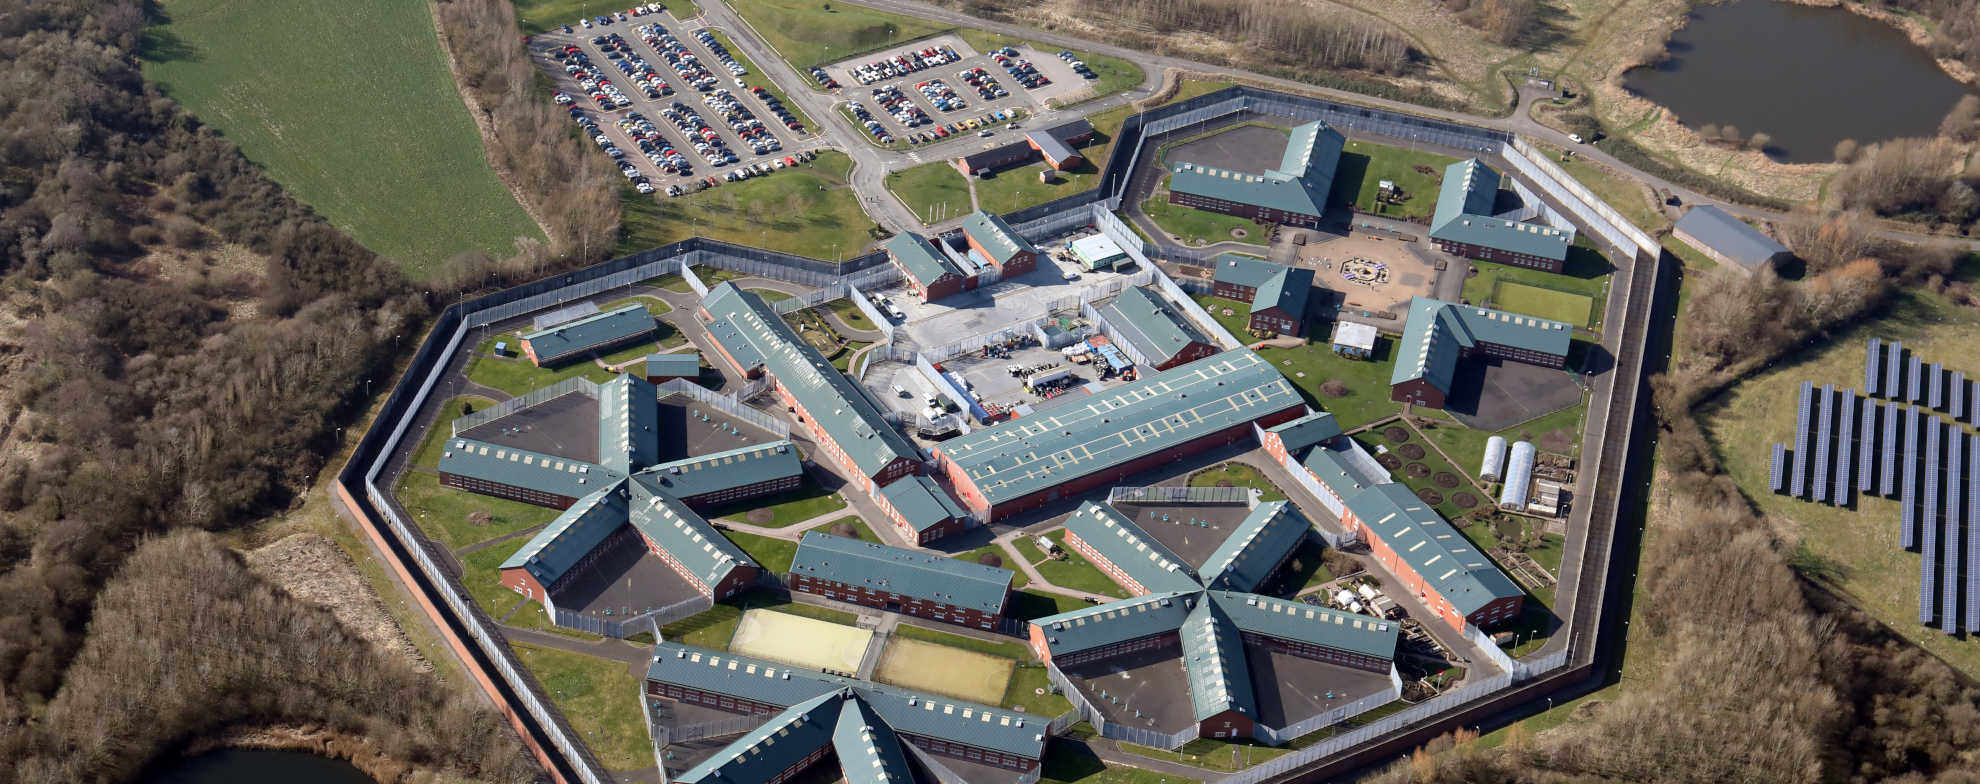 All New Prisons to be Zero-Carbon in the Future